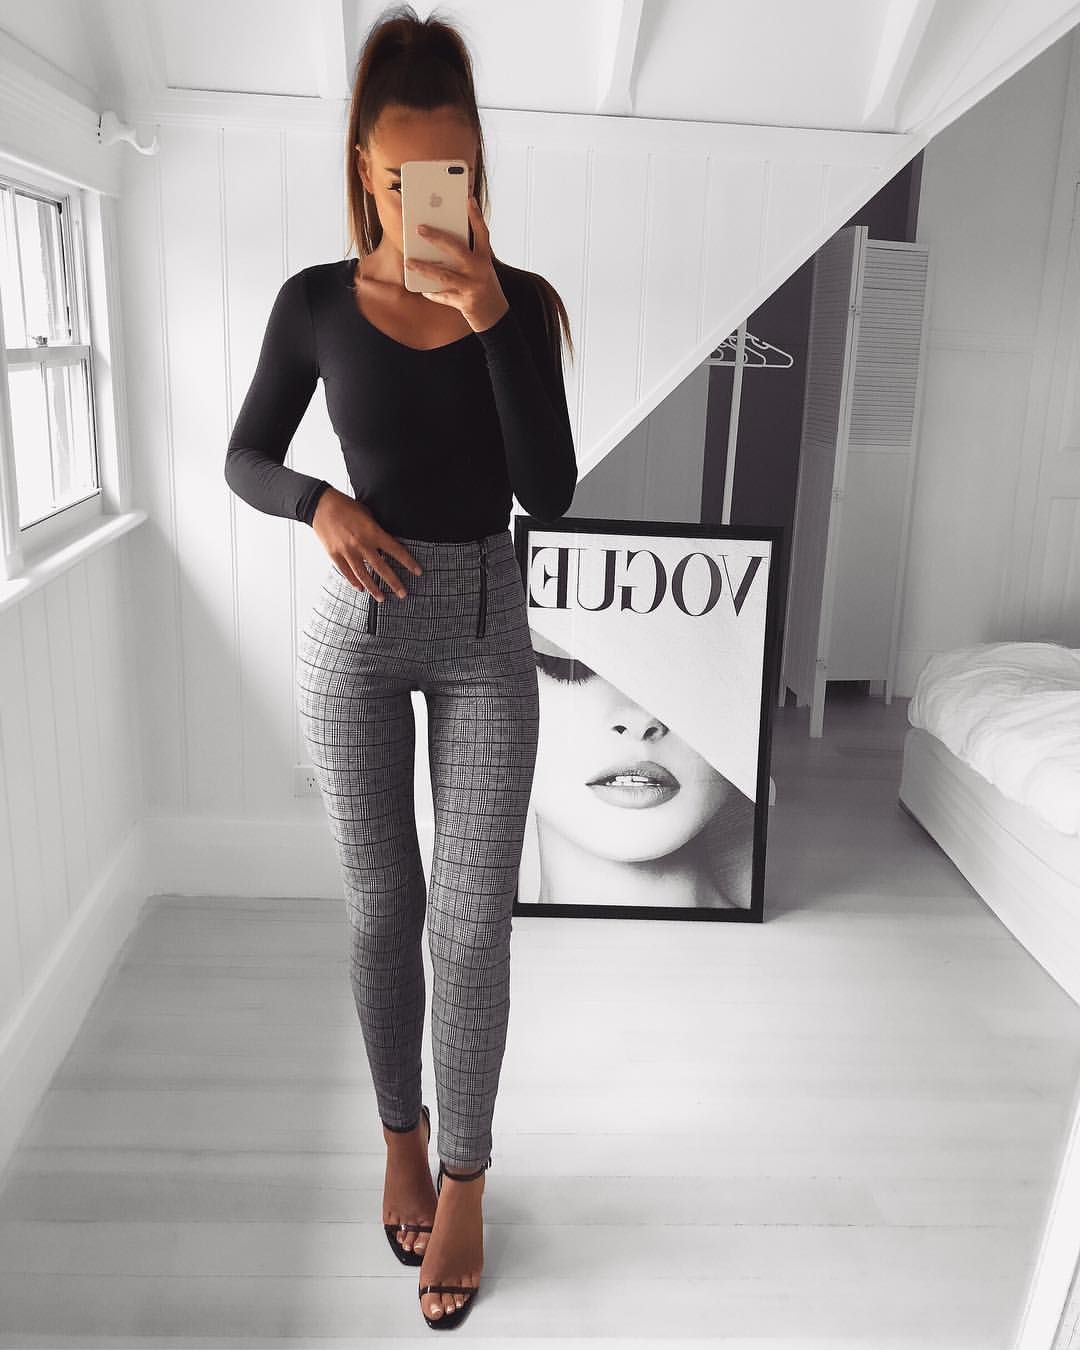 d7405a198d7 Outfit details- Olivia plaid leggings- black Grey XS from  fashionnova